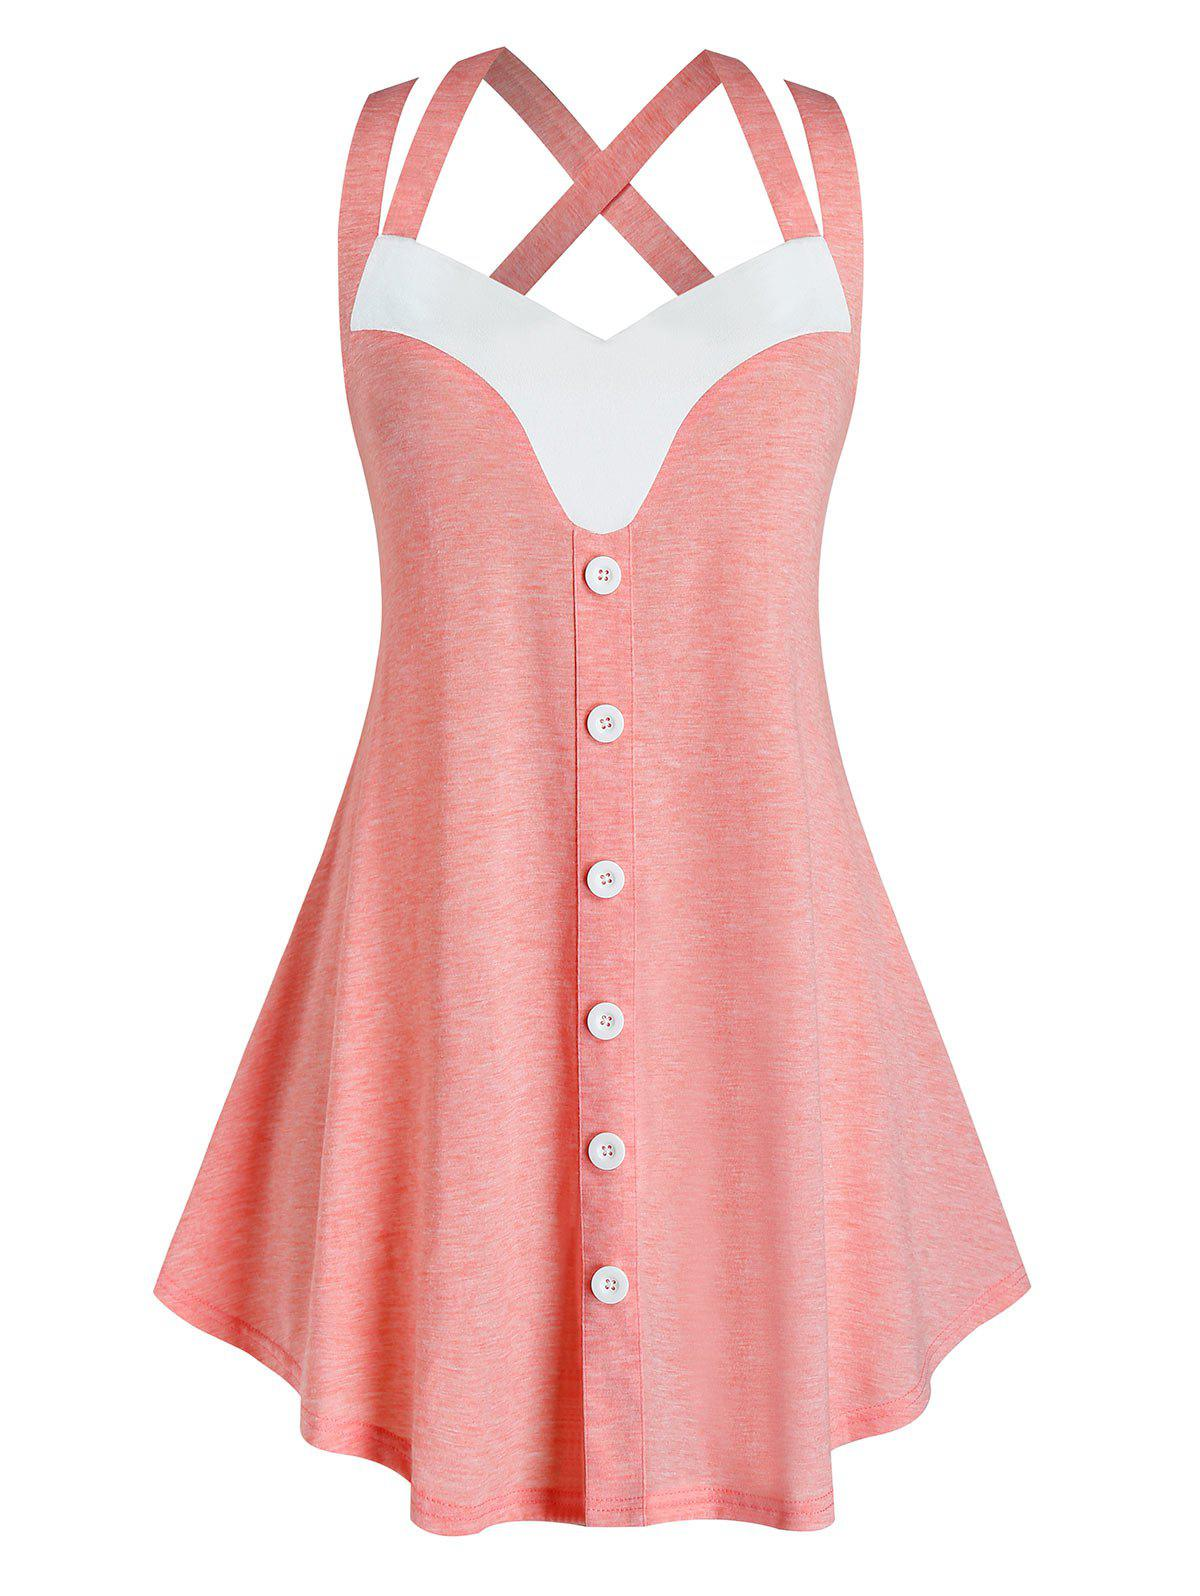 Plus Size Criss Cross Back Tunic Tank Top - LIGHT PINK 2X